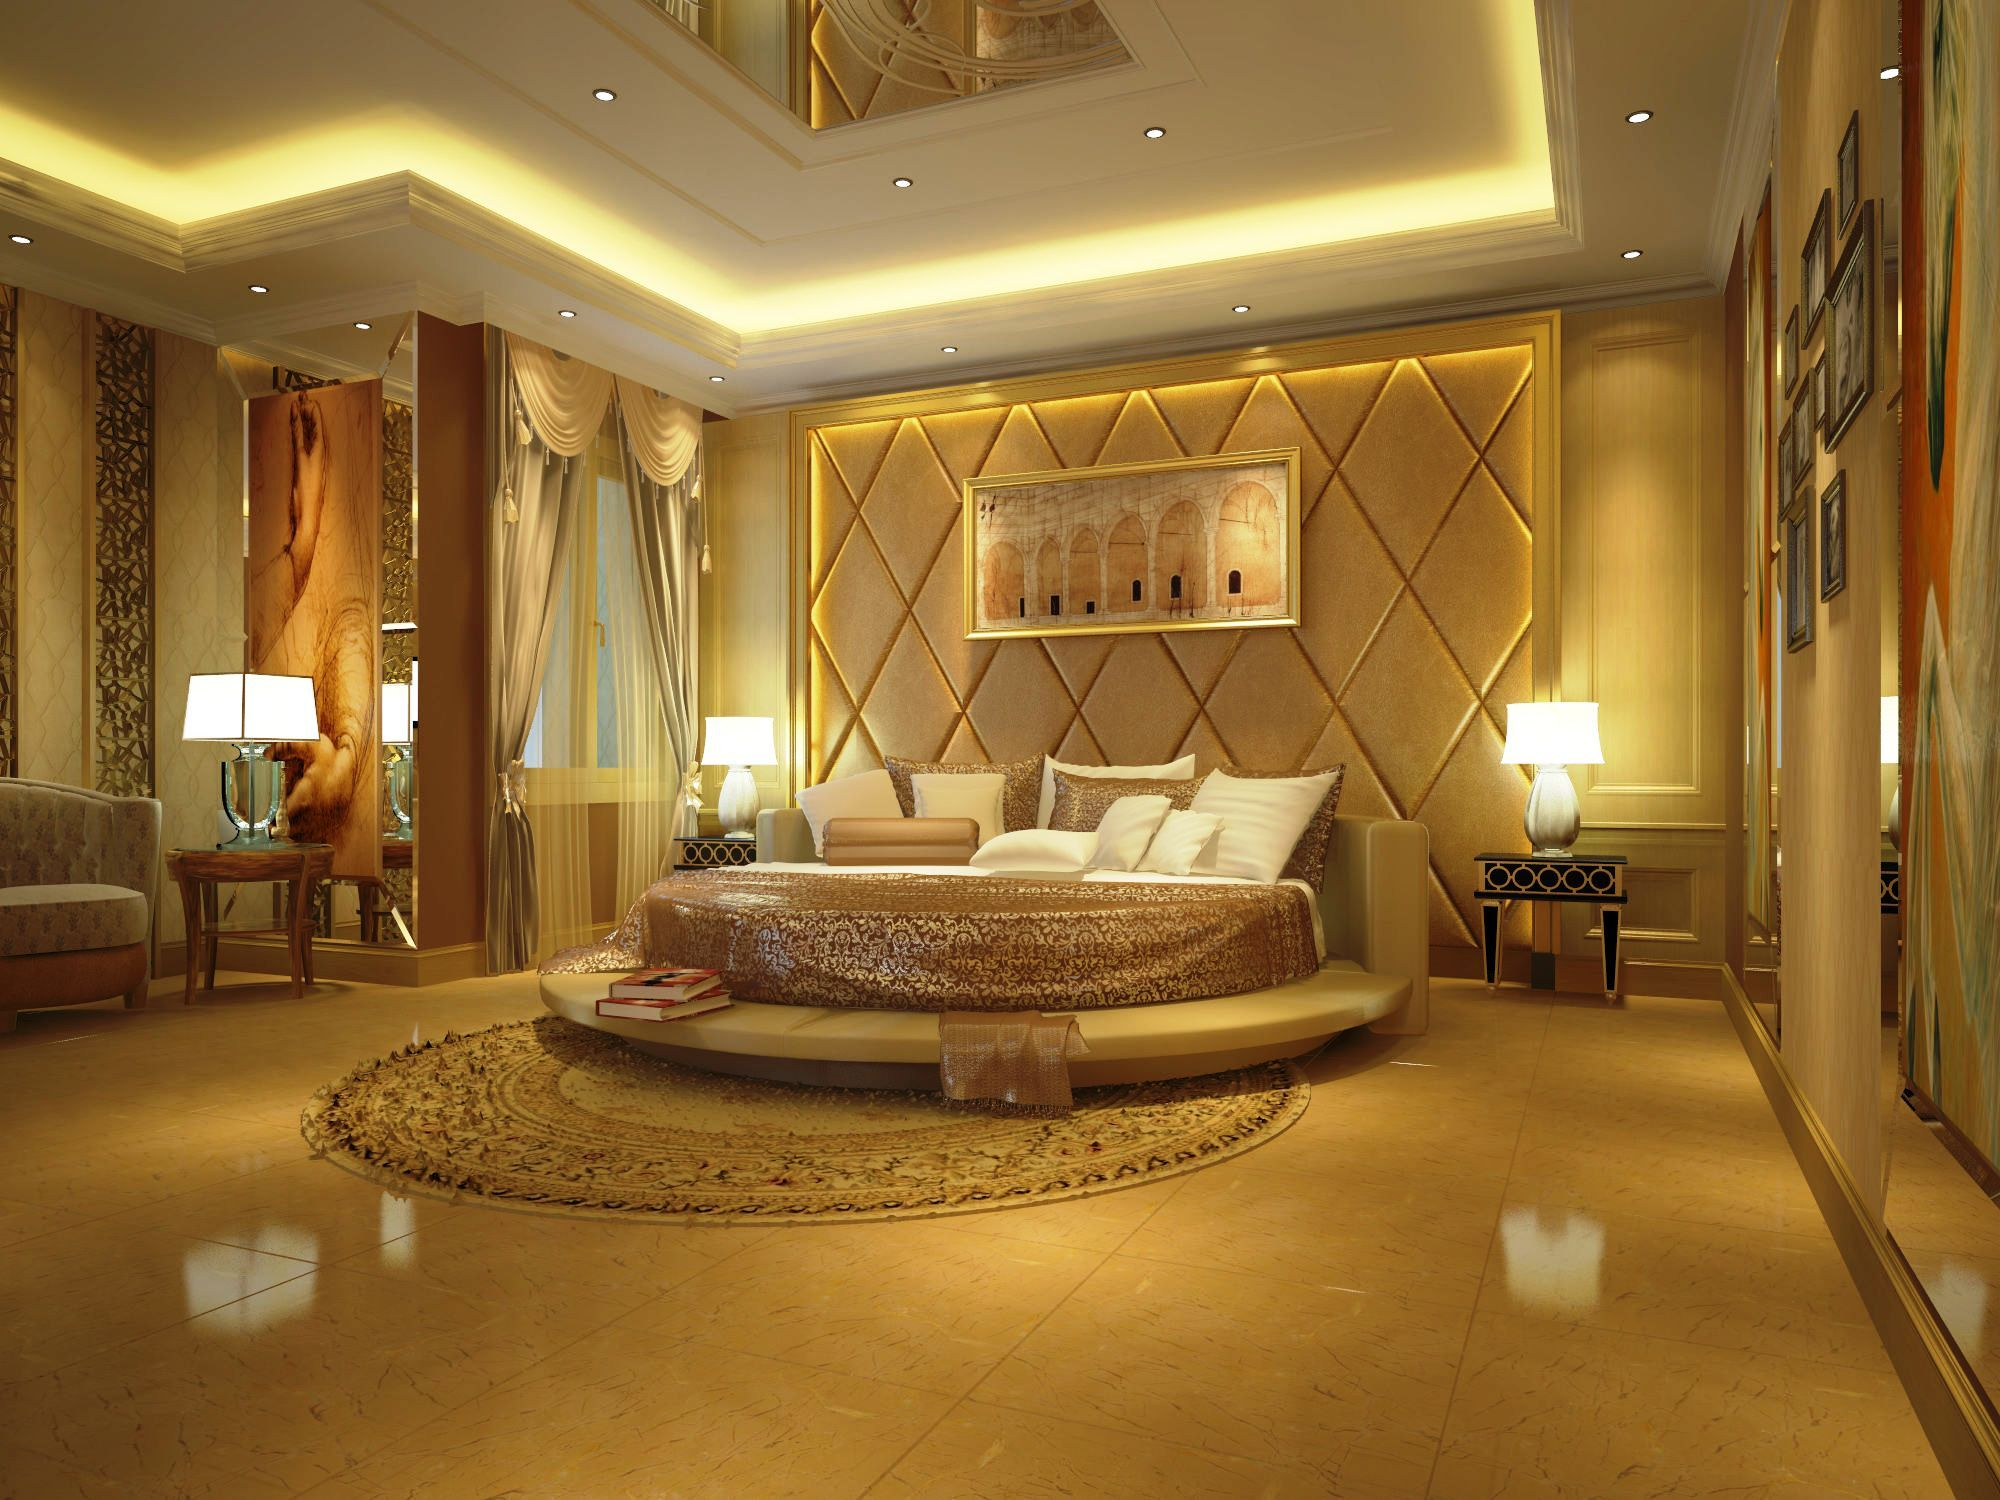 Luxury Bedrooms Interior Design Impressive A Master Bedroom Fit For A King & Queendescription From Inspiration Design